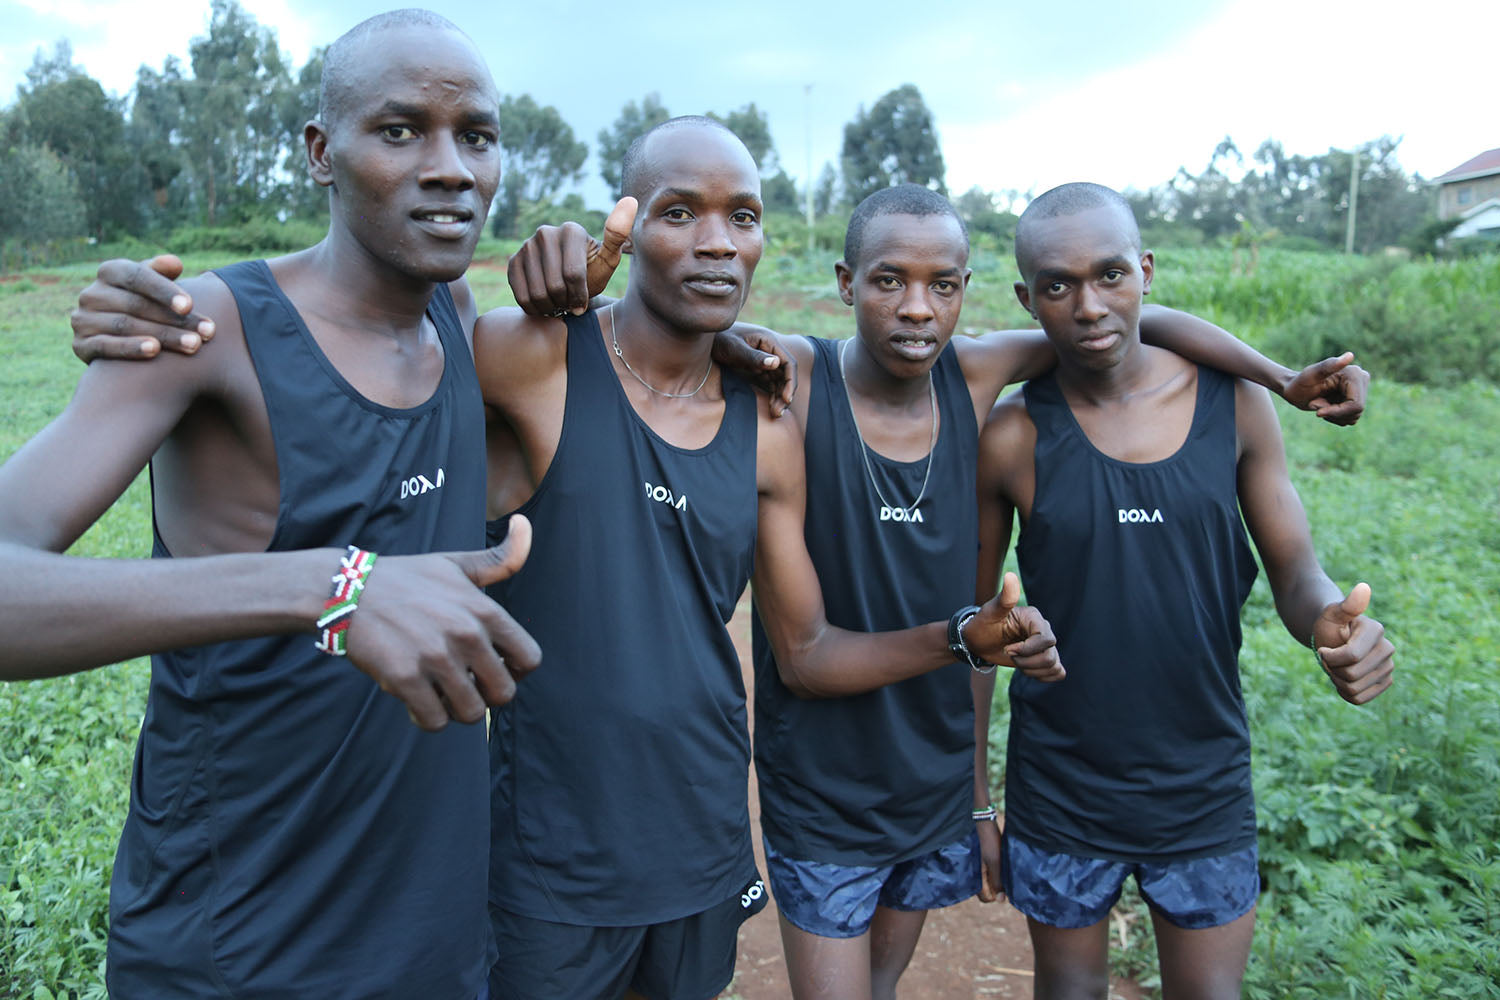 Students from the Kenswed Academy running in DOXA technical running apparel